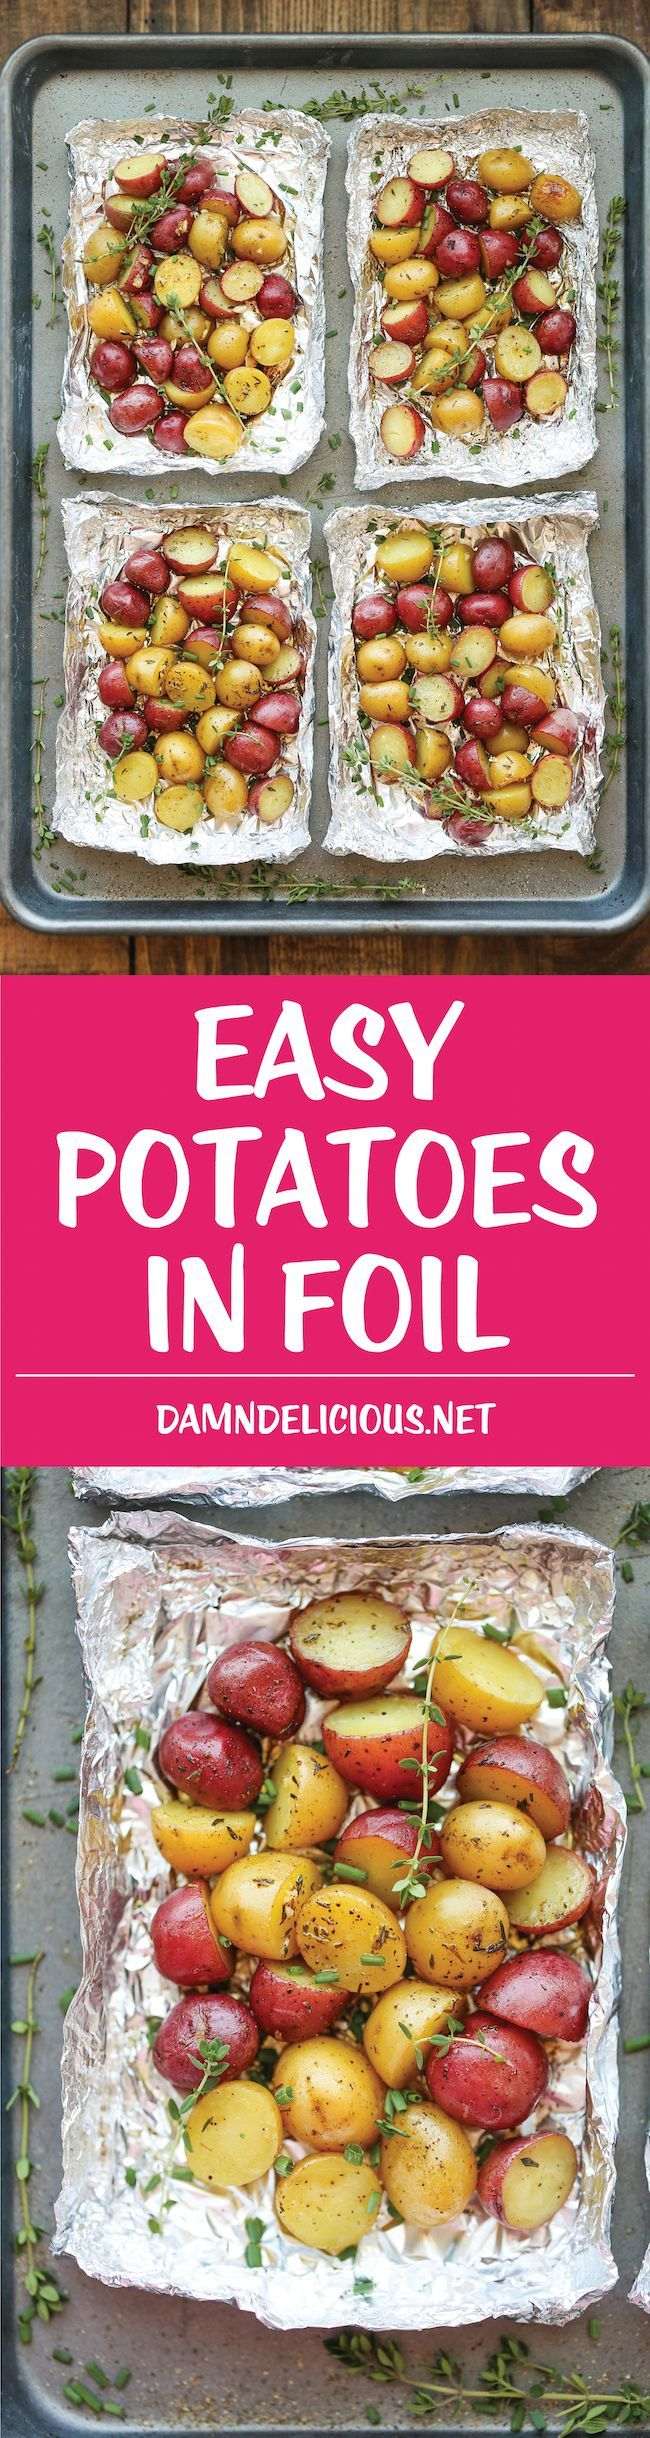 Easy Potatoes in Foil -- easy to make, delicious, and easy clean up | Propane and Grilling